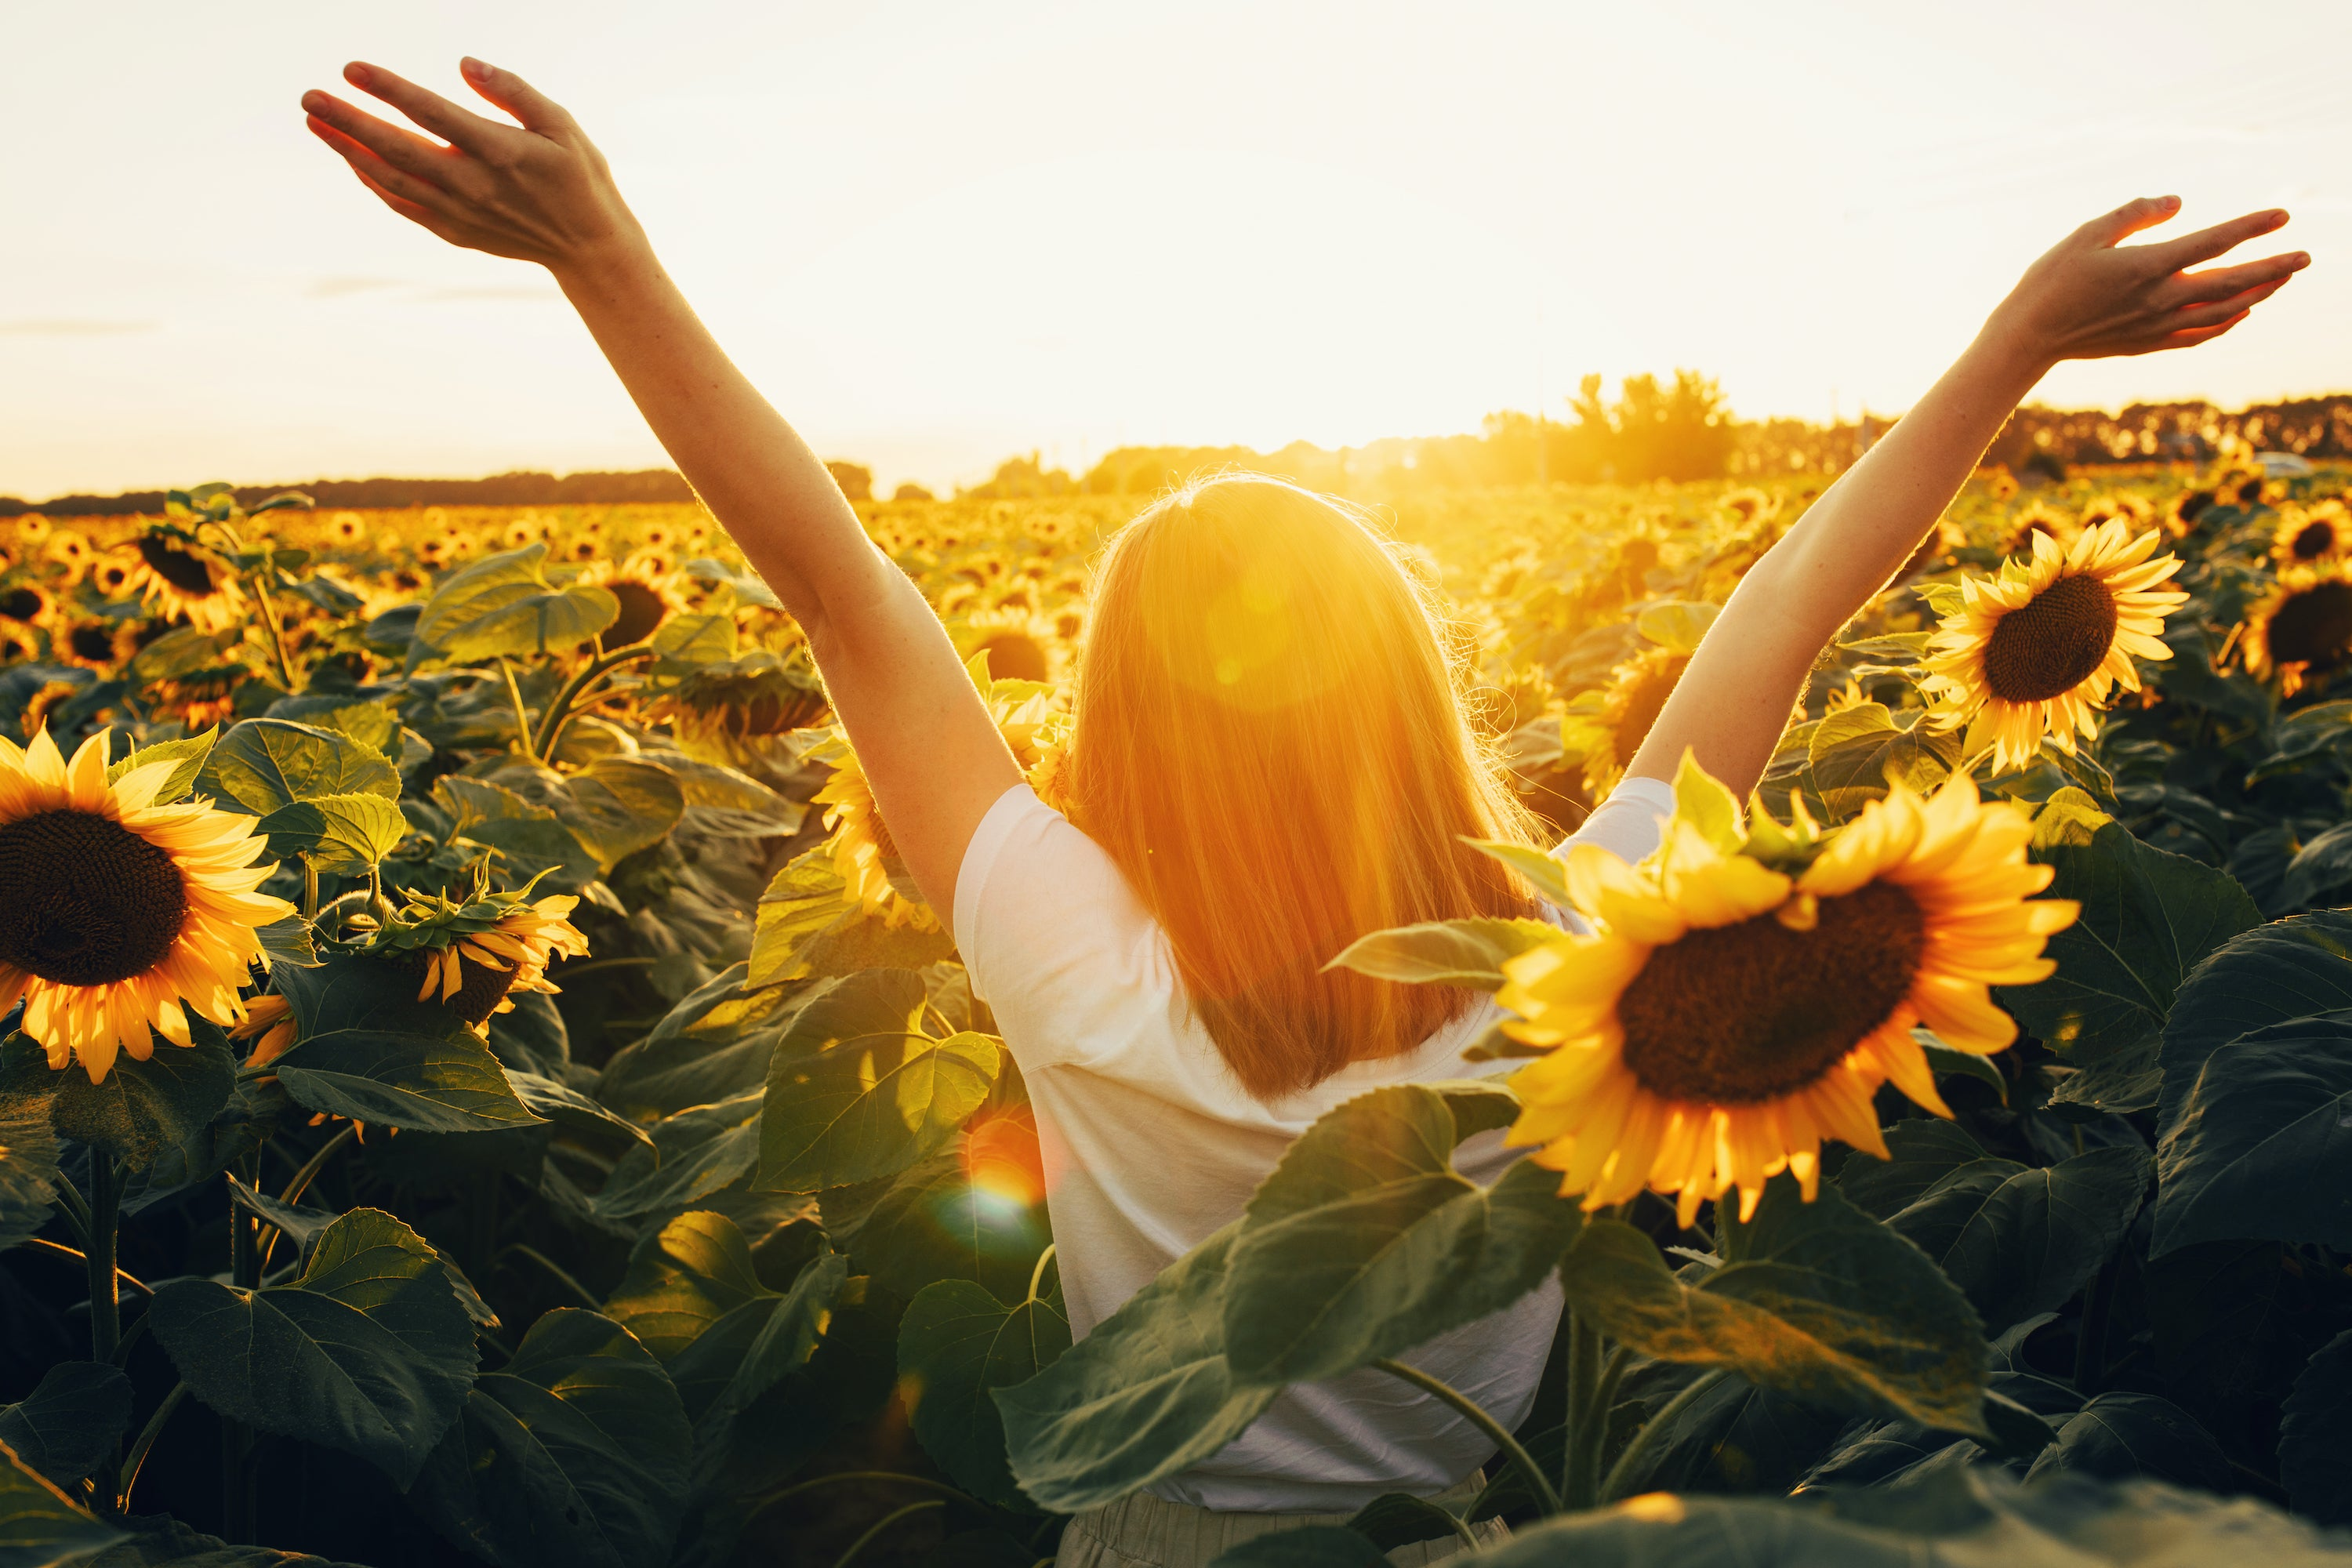 woman standing with arms raised in field of sunflowers on a sunny day